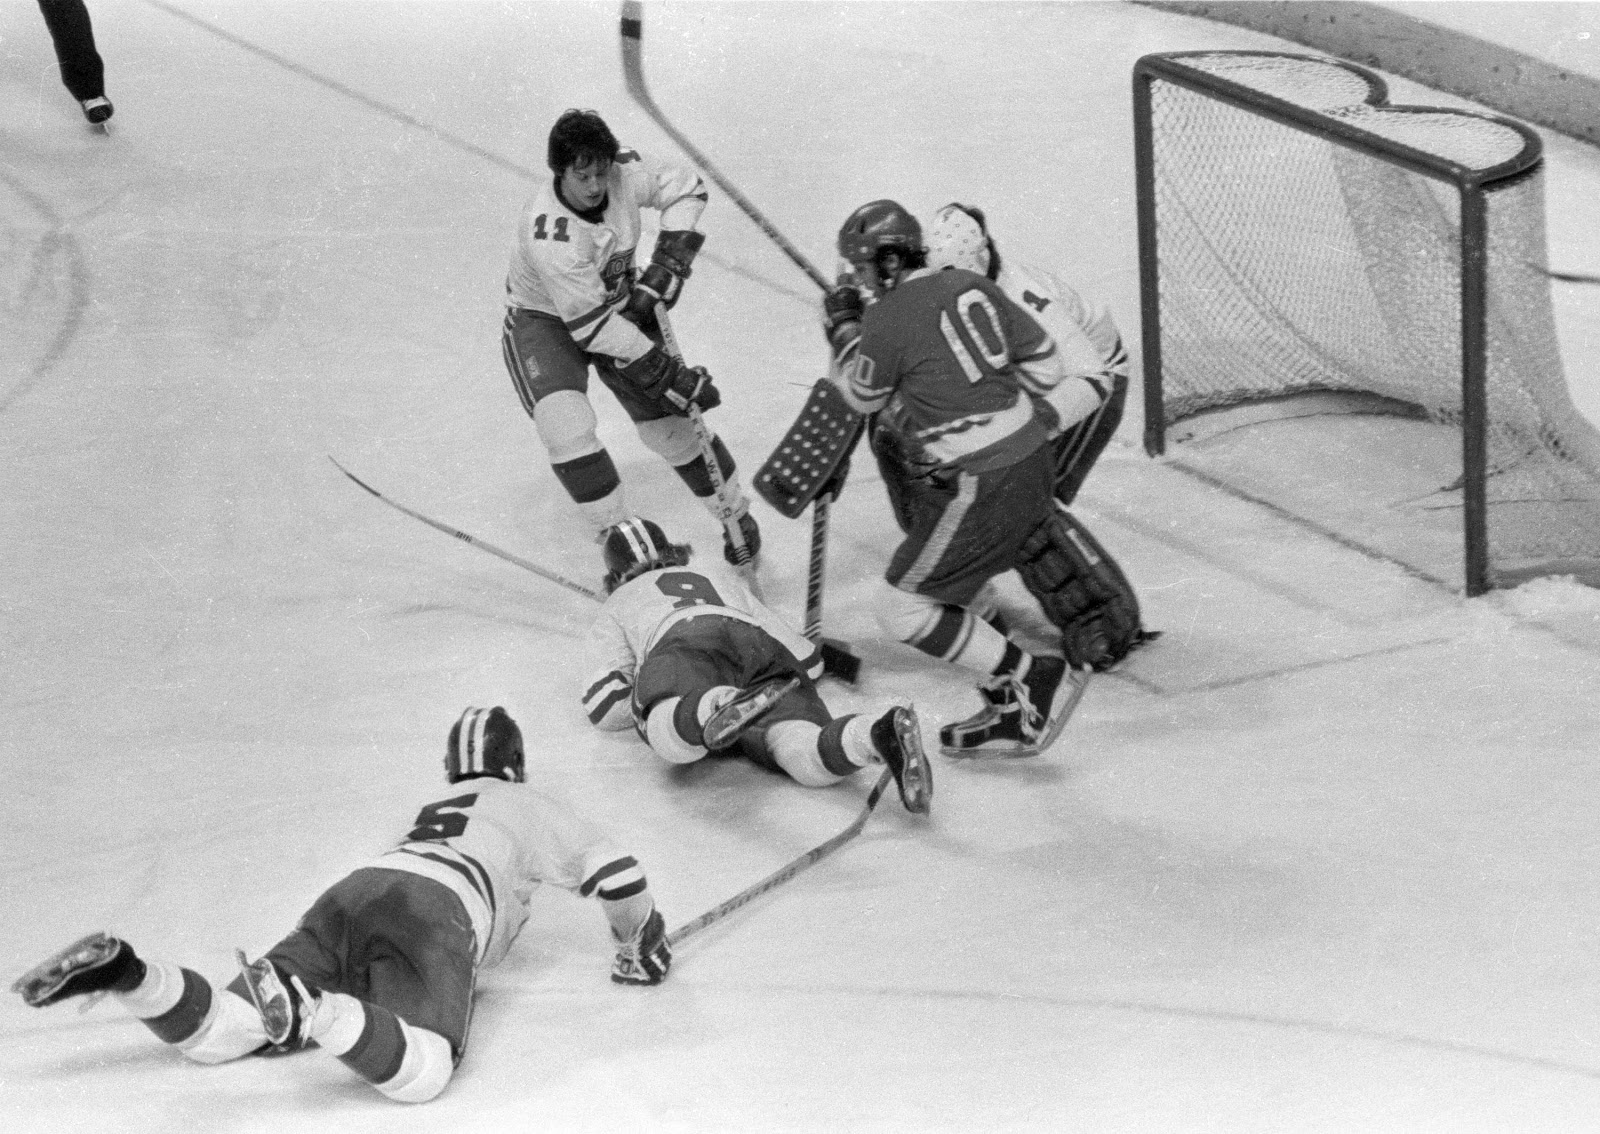 Montreal Juniors vs Soviet Selects, Dec. 1974 1.jpg